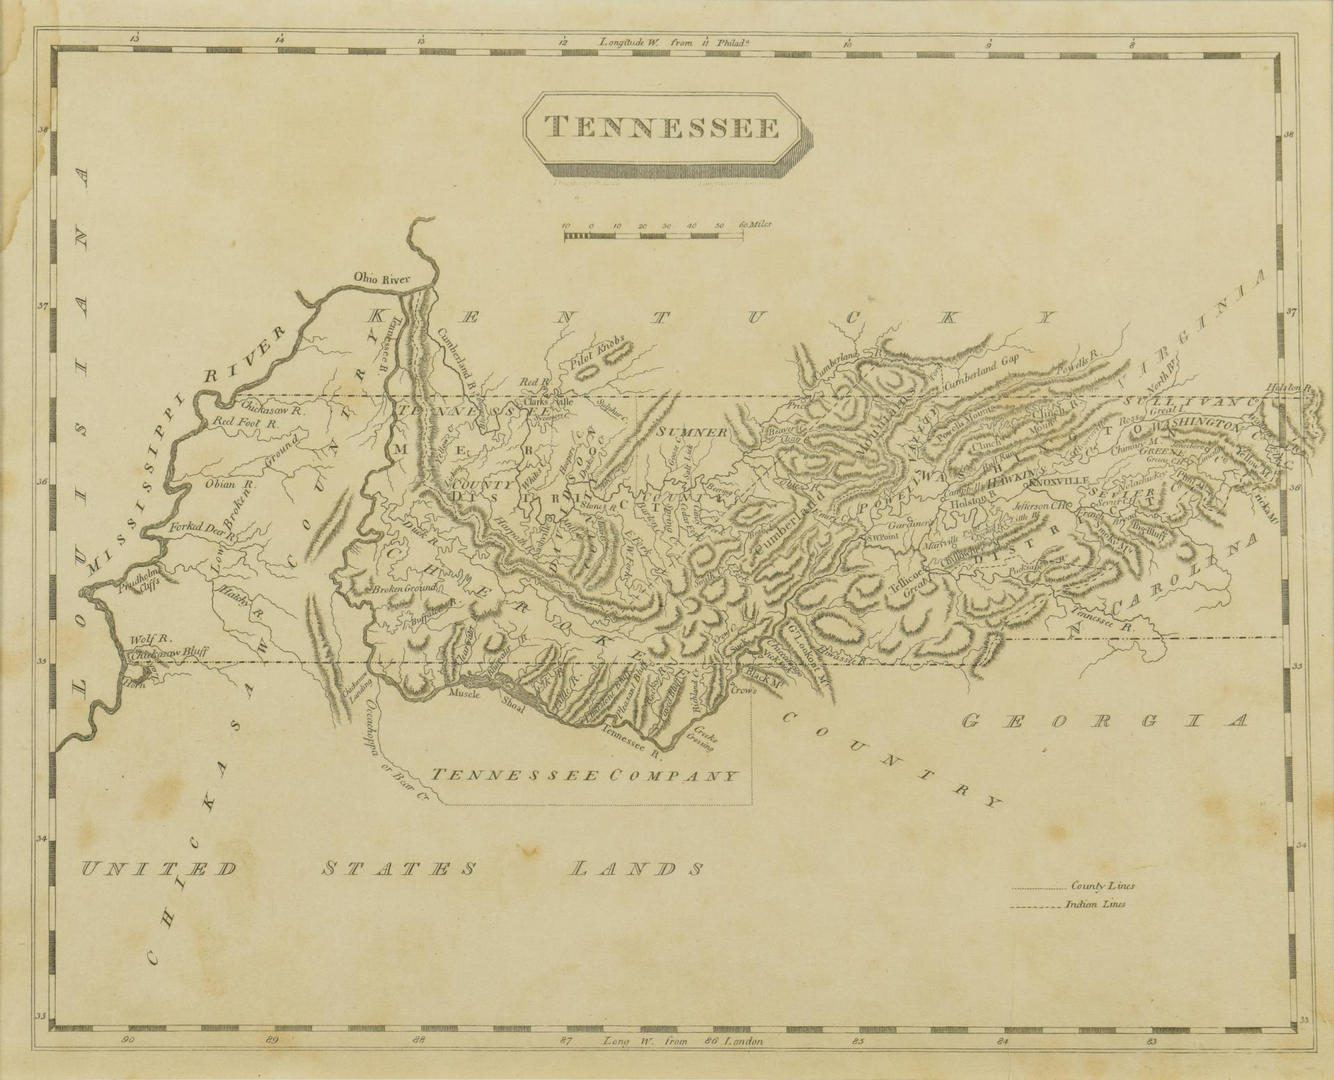 Lot 83: Tennessee Map, Samuel Lewis & Alexander Lawson